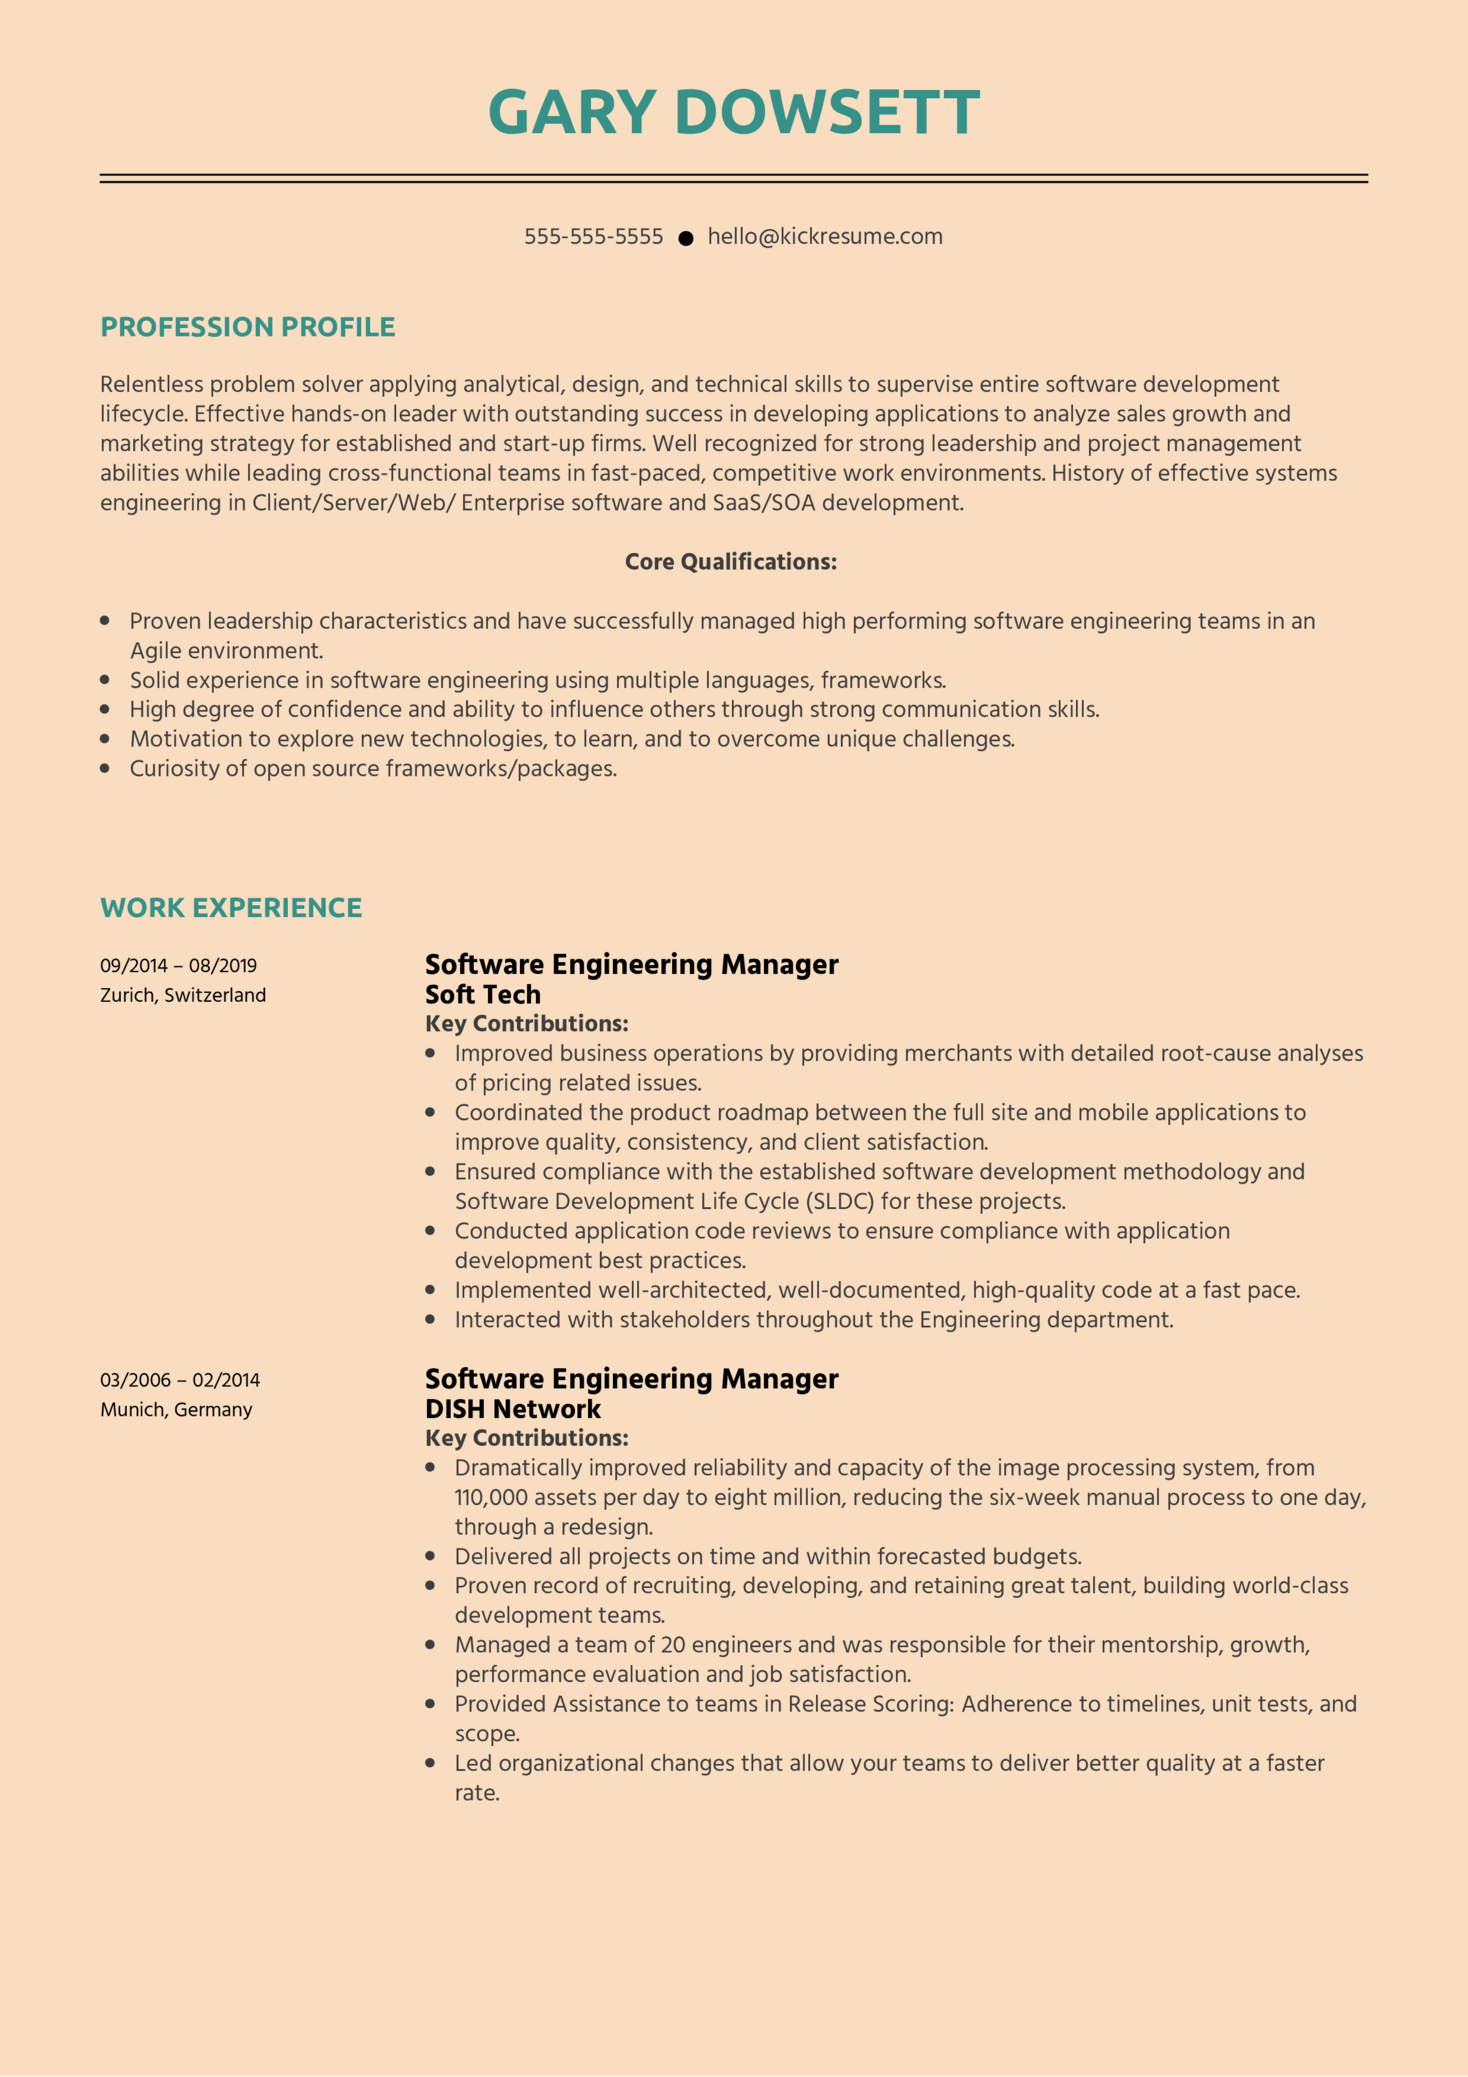 Software Engineering Manager Resume Sample Kickresume